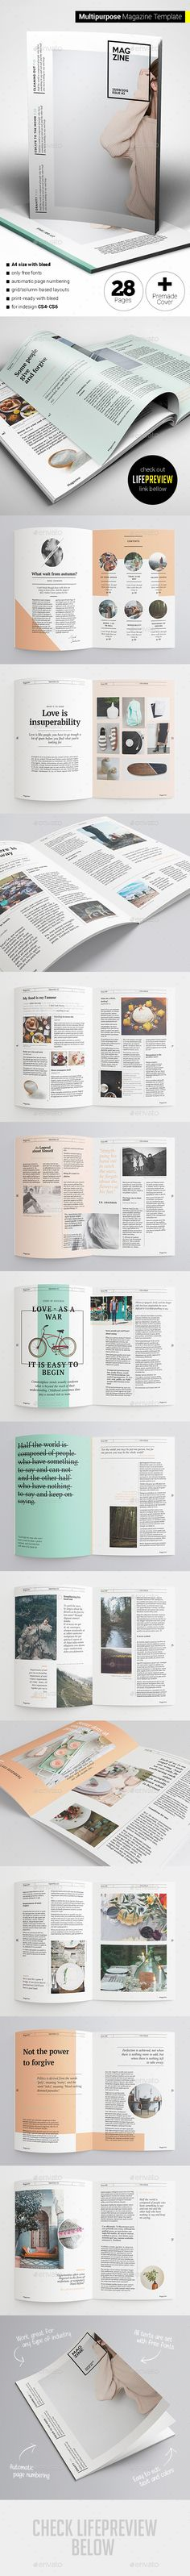 Multipurpose Magazine — InDesign INDD #magazine #architecture • Available here → https://graphicriver.net/item/multipurpose-magazine/13107062?ref=pxcr